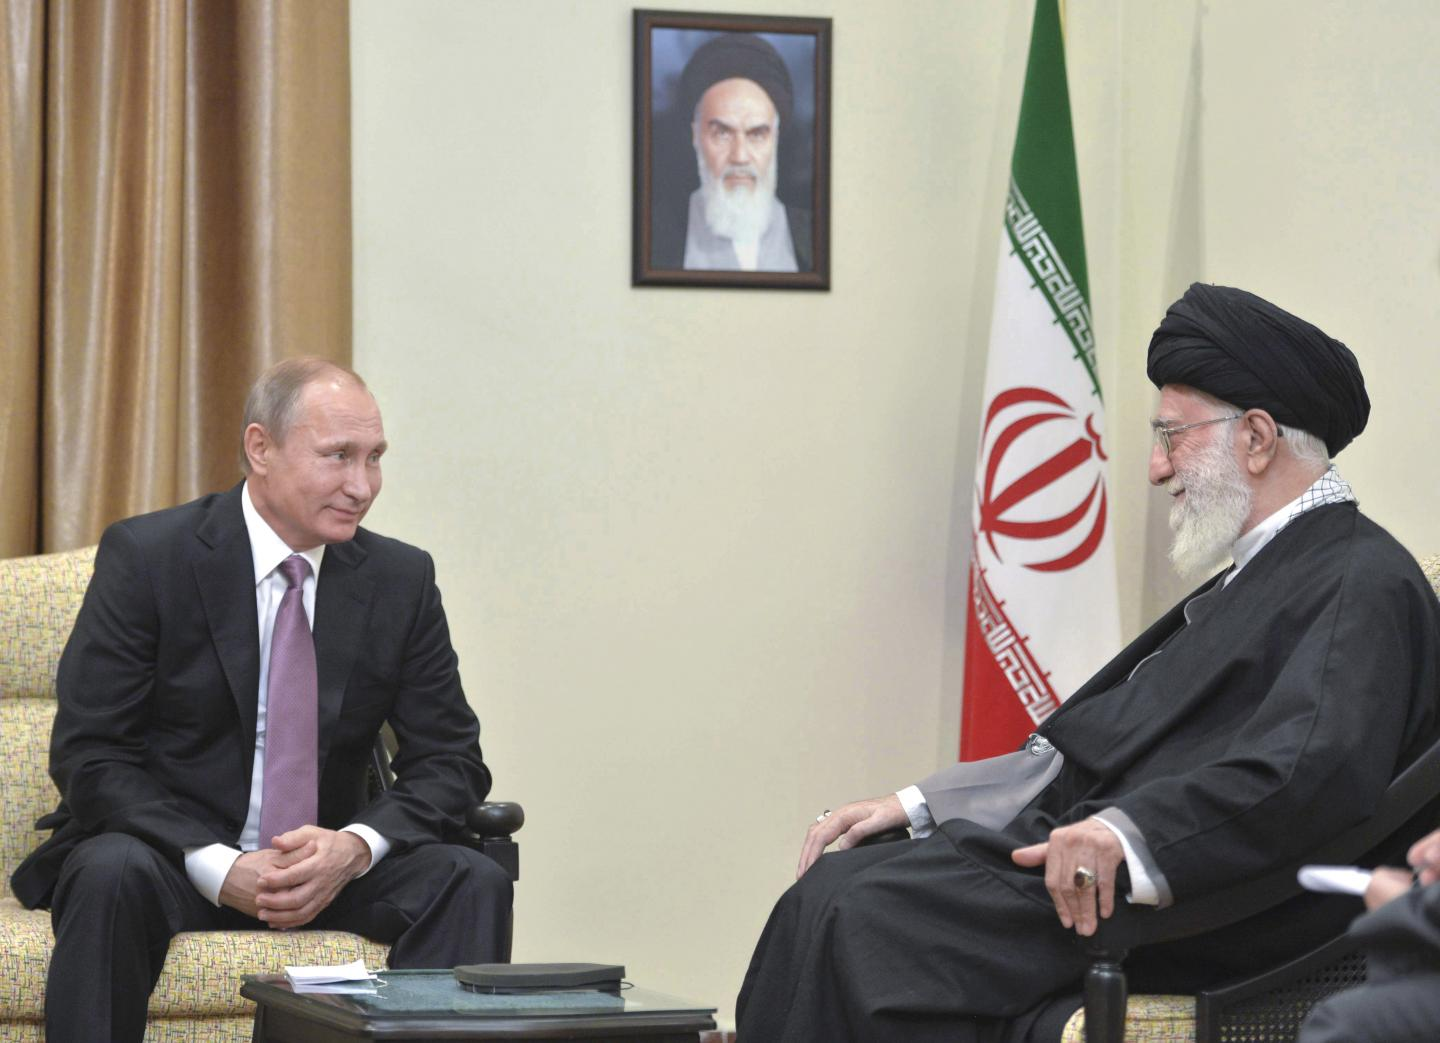 Putin is betting on a losing horse, as in Iran